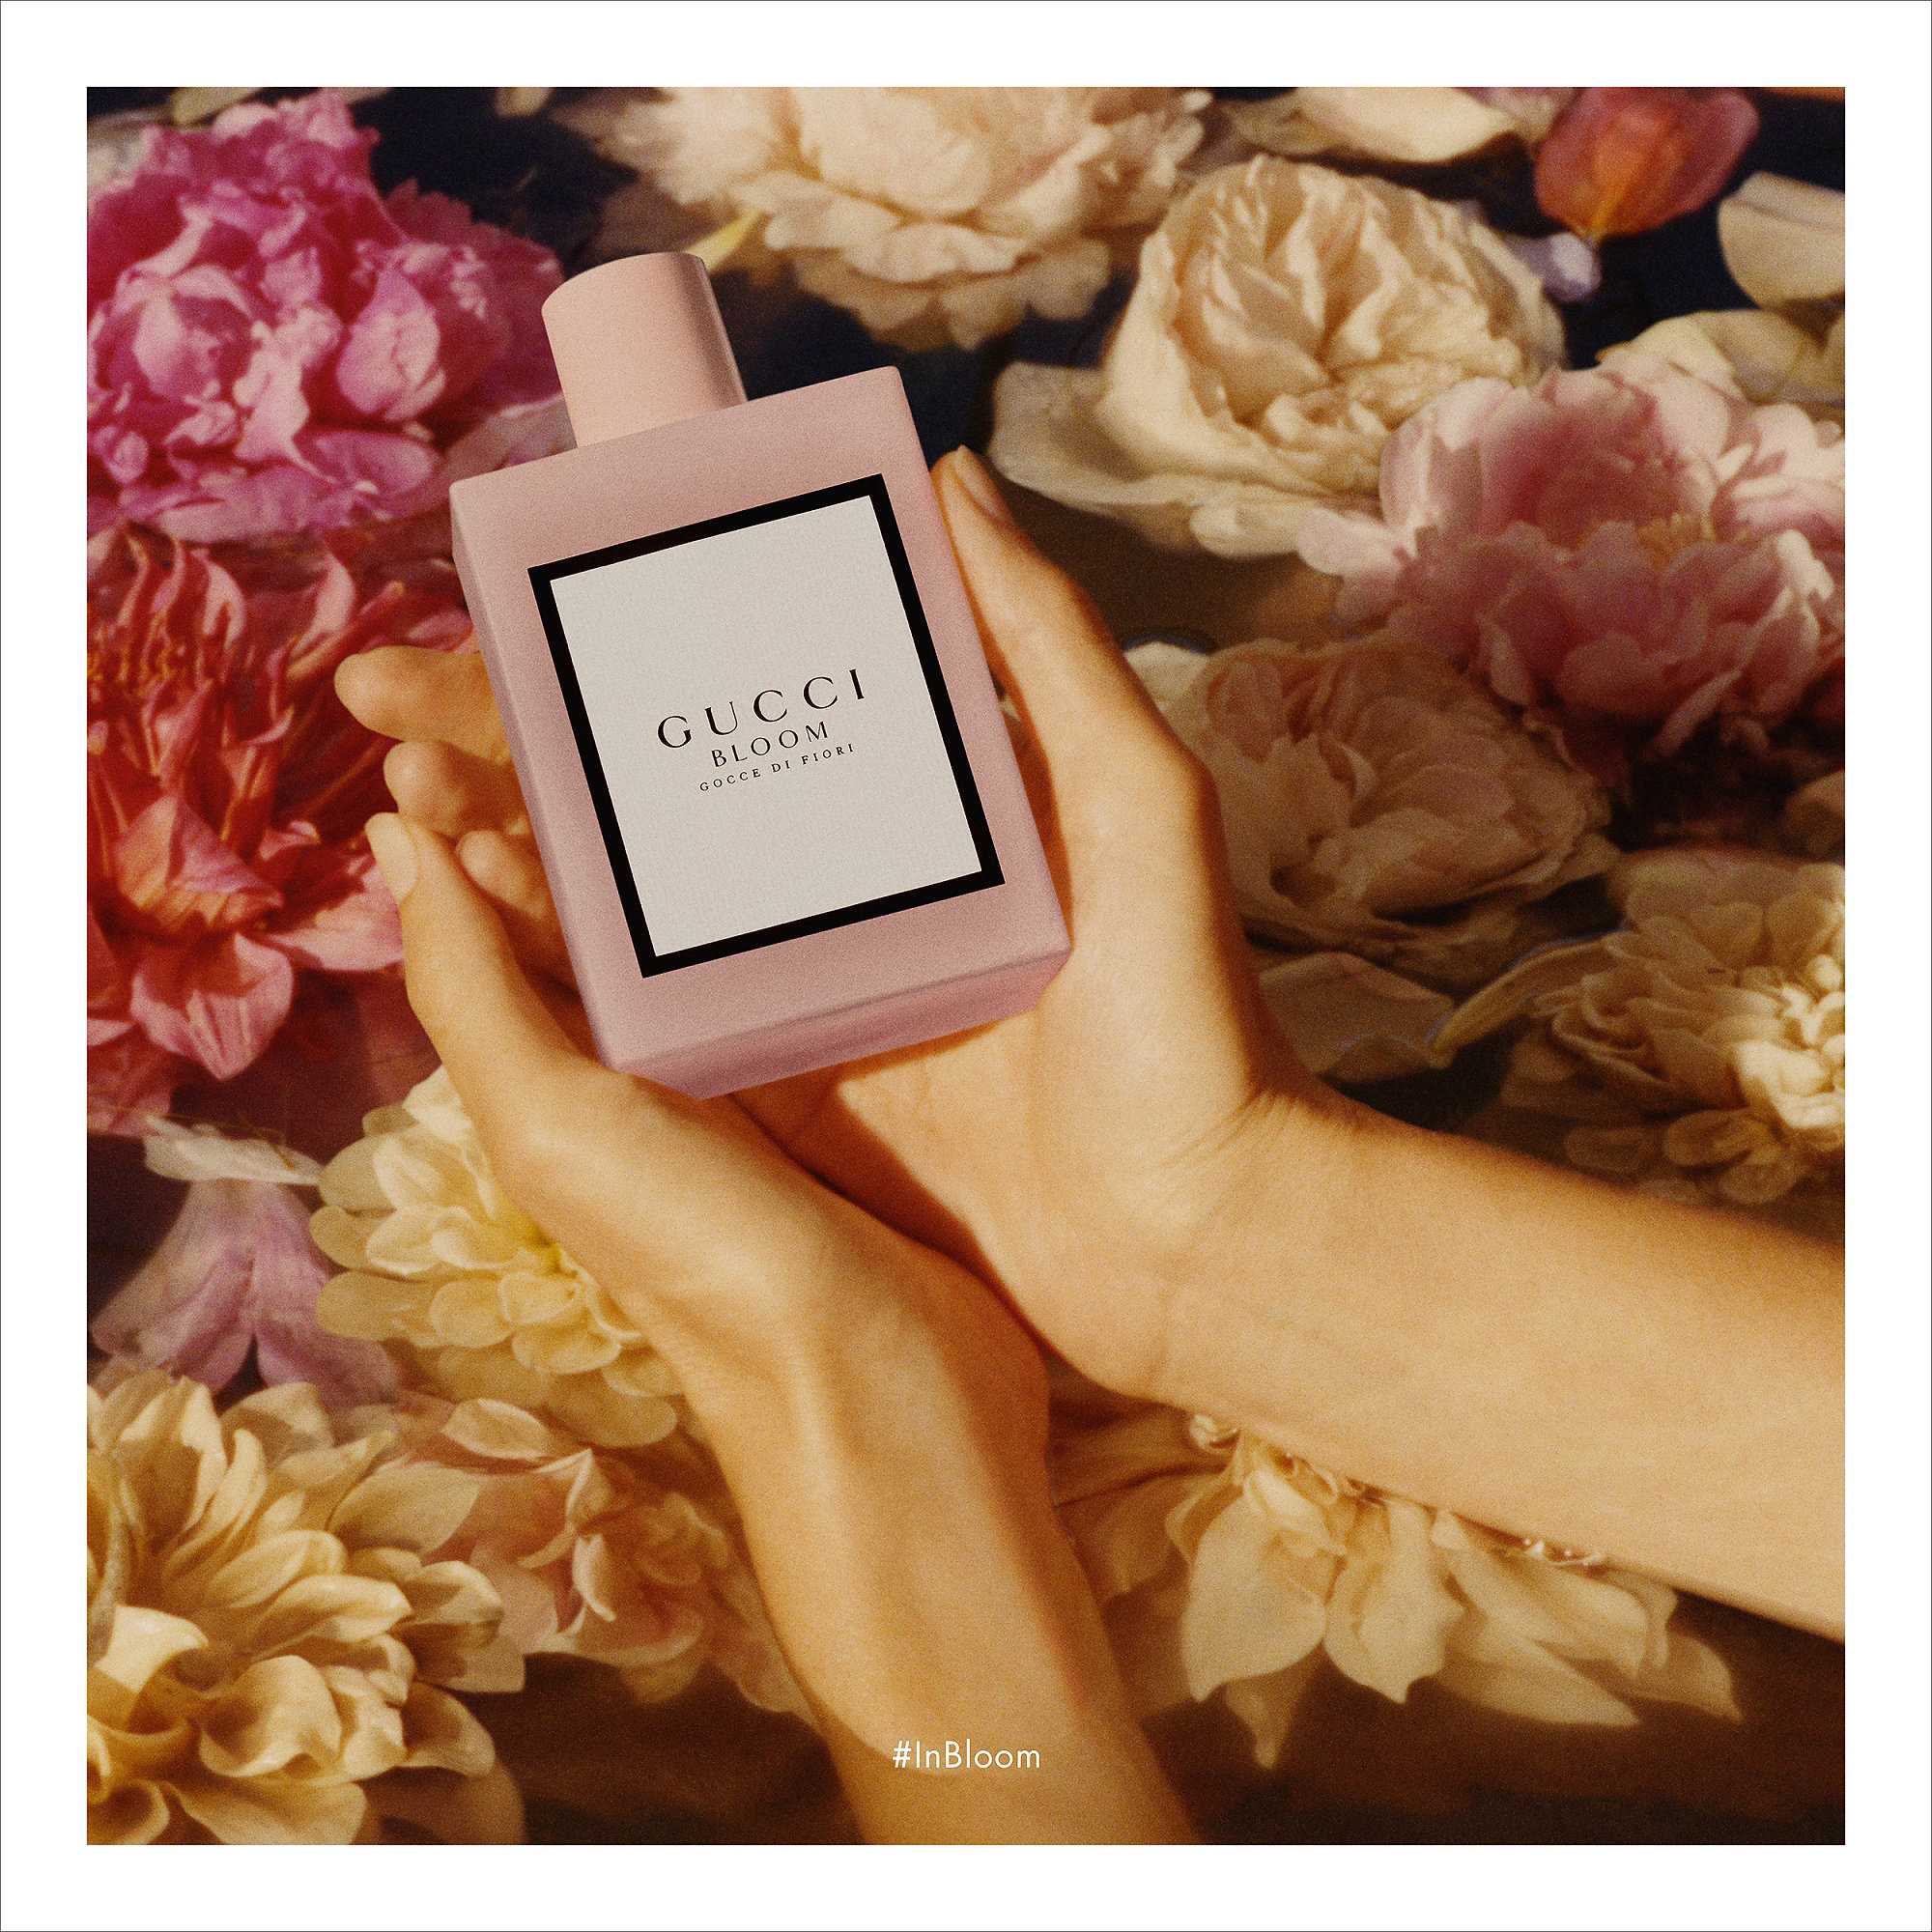 Sephora Canada: New Gucci Fragrance and Body Creams from $57